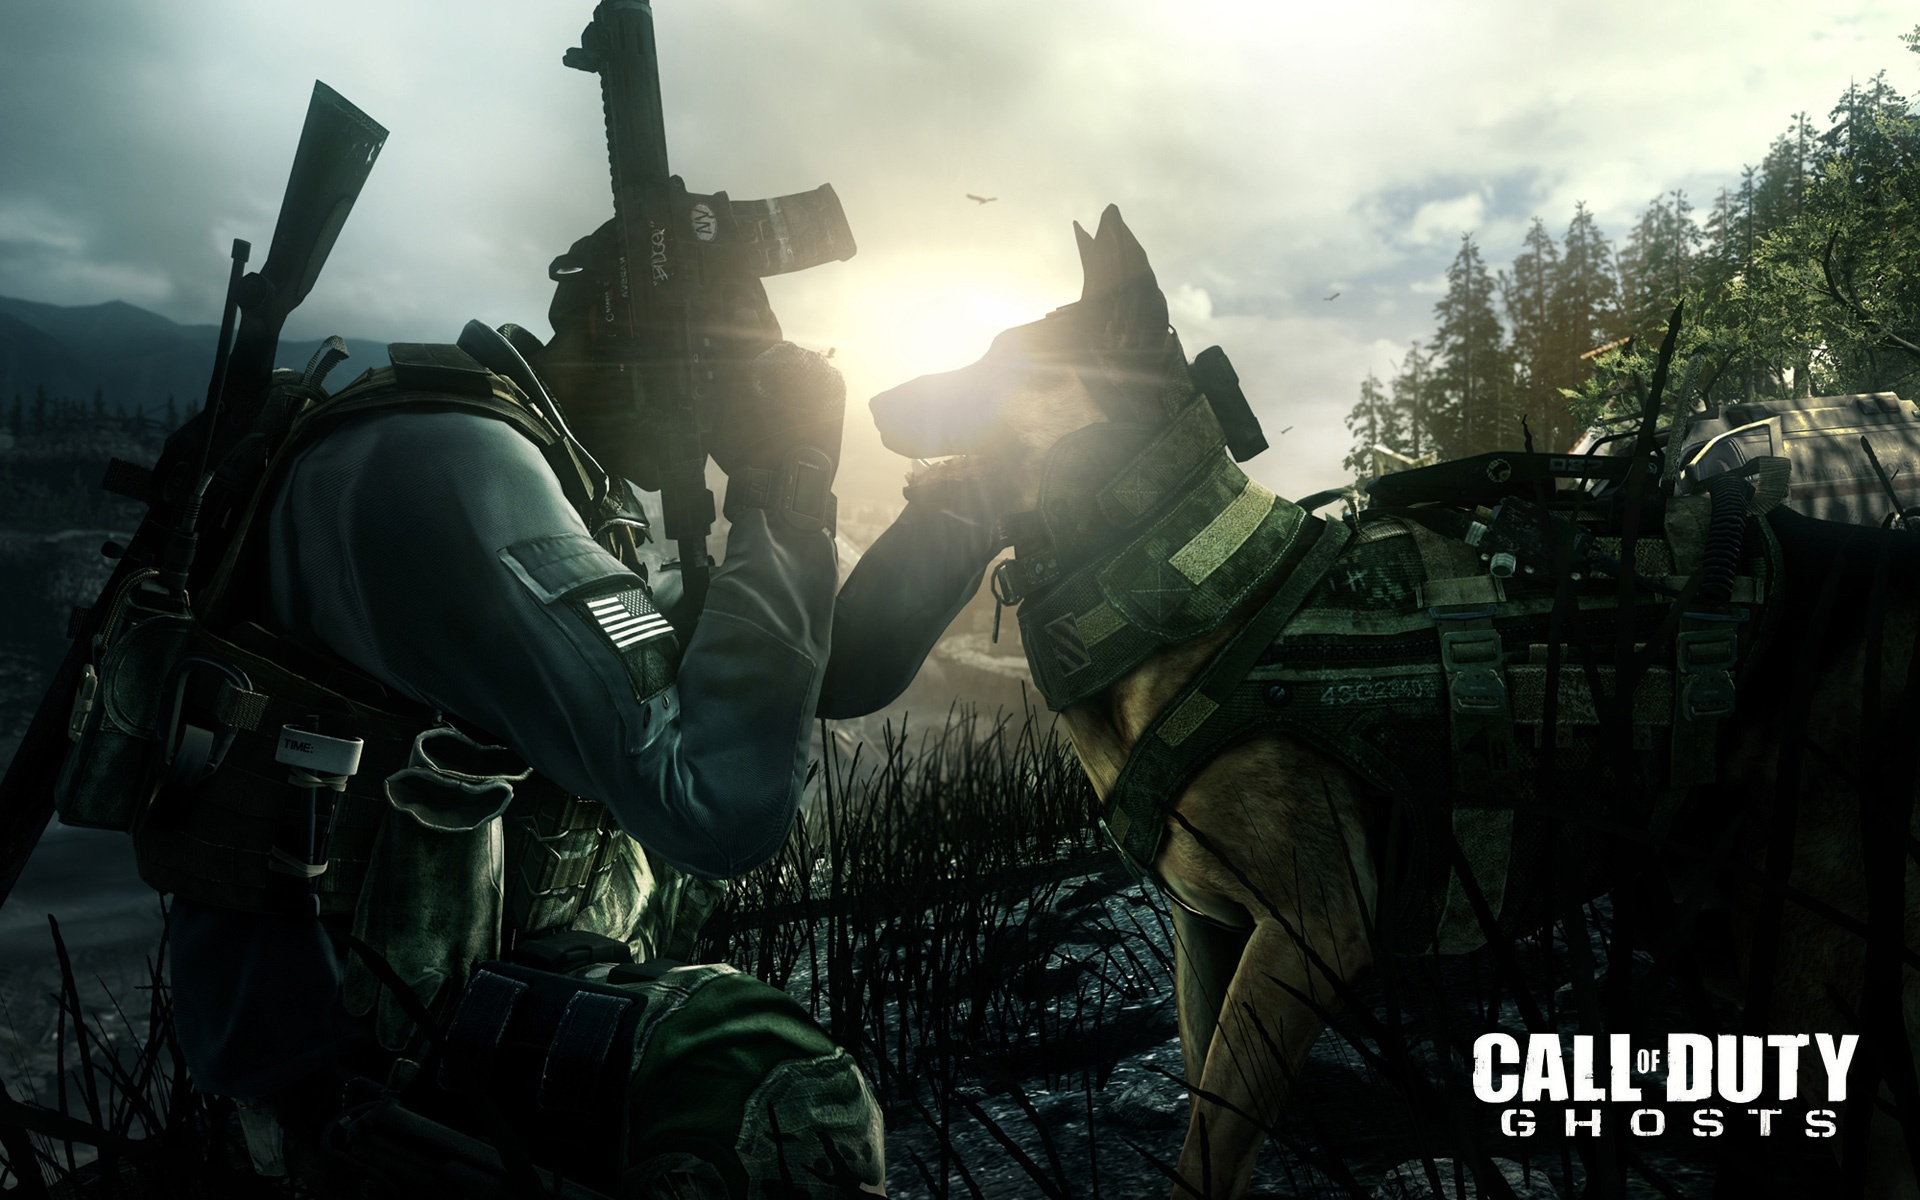 Wallpaper Call Of Duty Ghosts Hd 1920x1200 Hd Picture Image